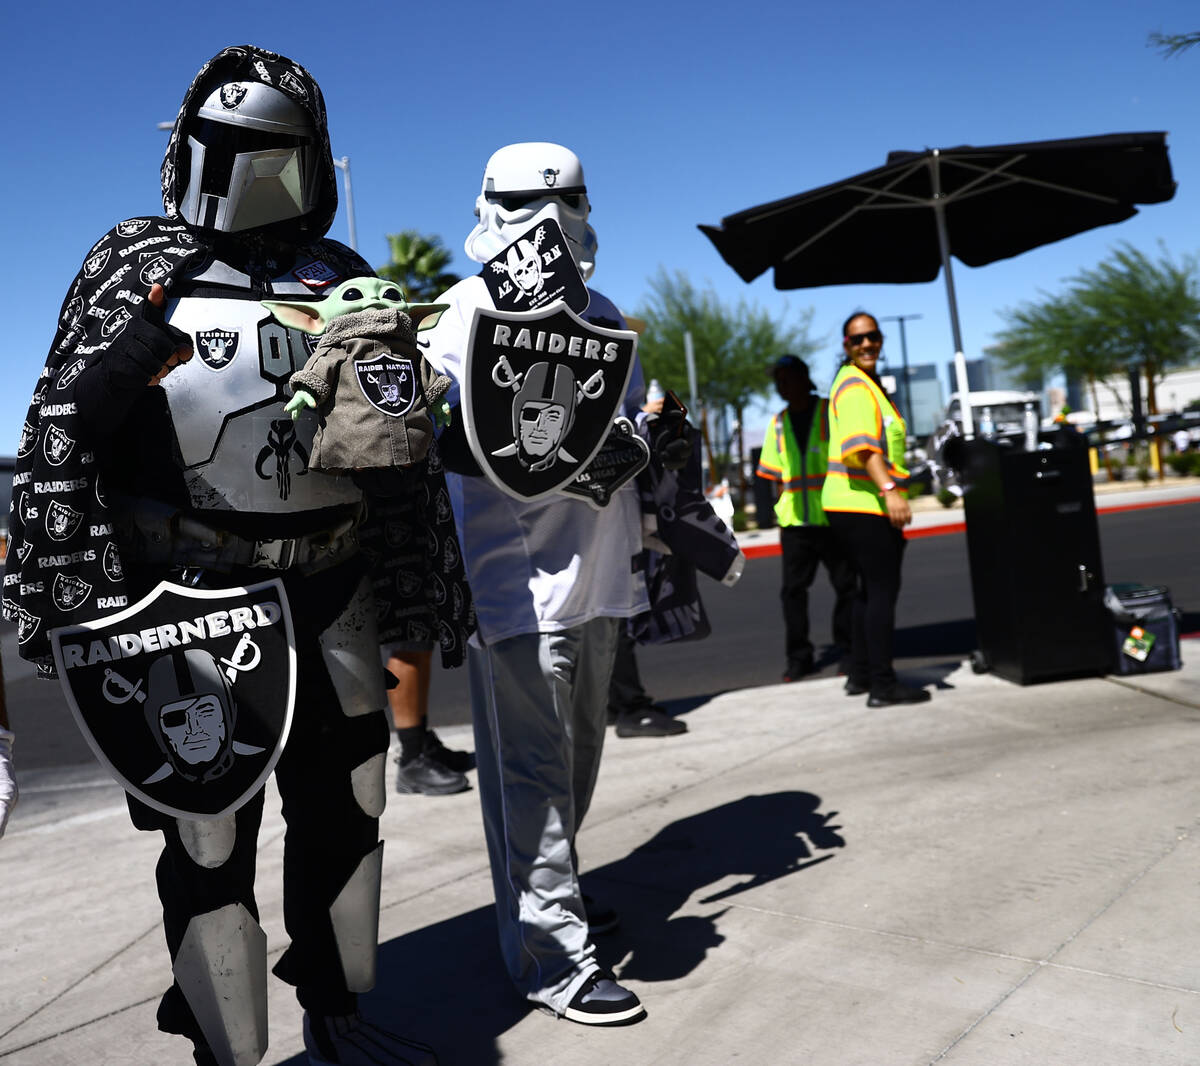 Fans wearing costumes walk around before an NFL football game between the Raiders and the Balti ...